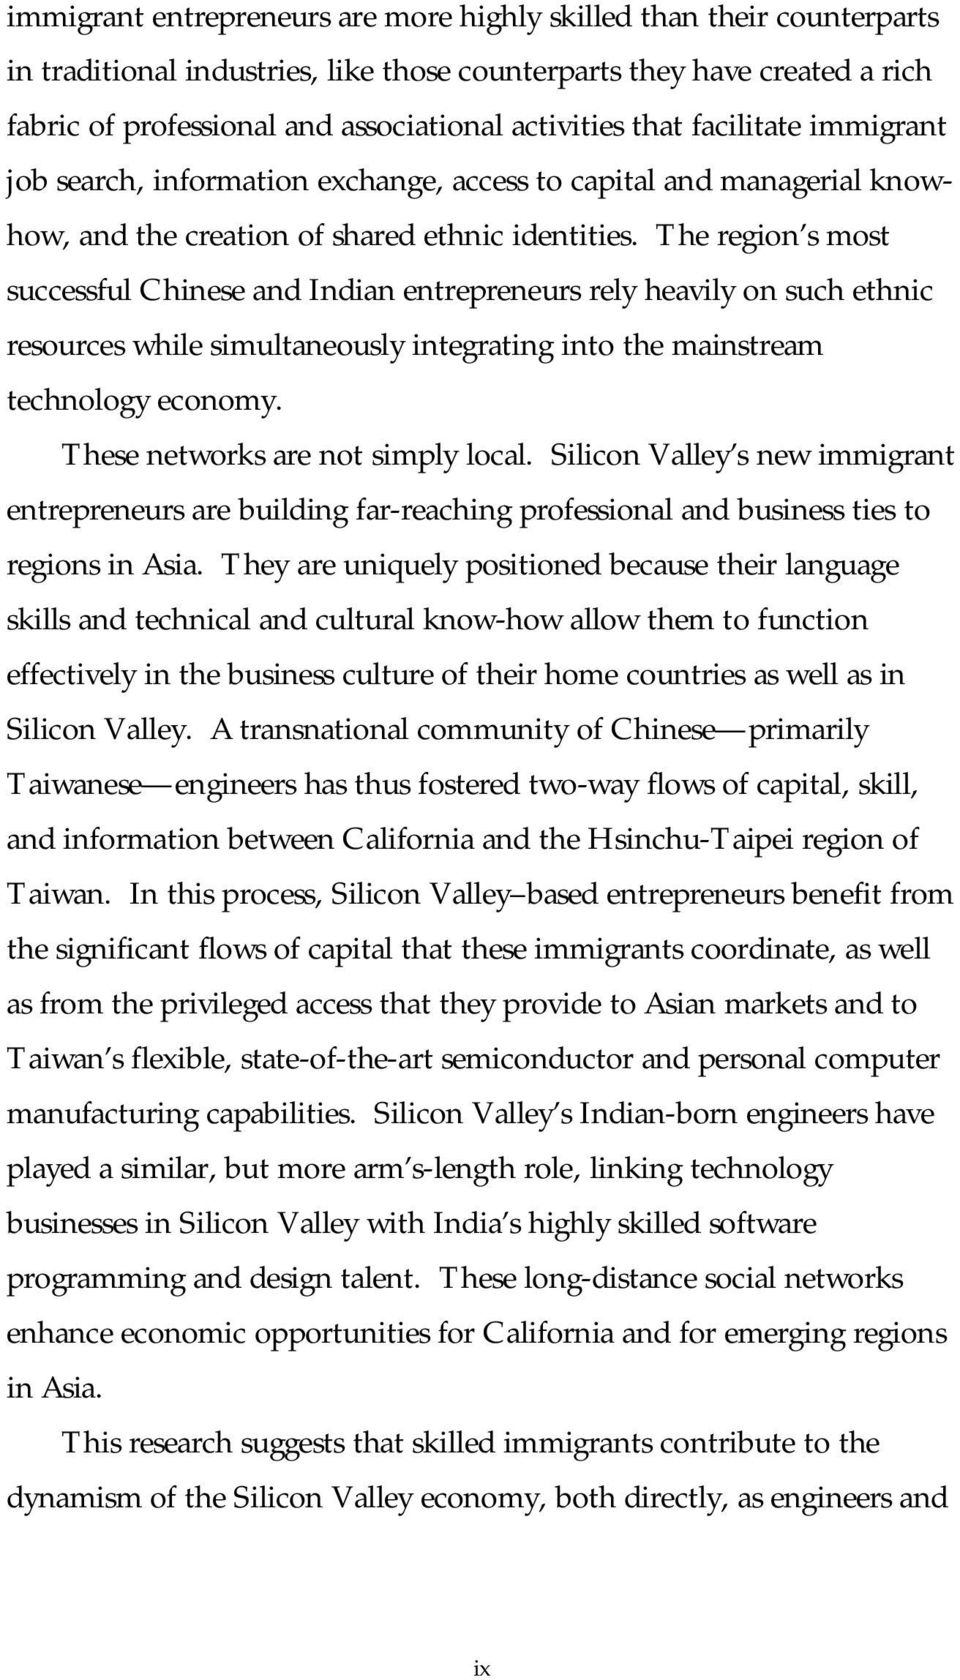 The region s most successful Chinese and Indian entrepreneurs rely heavily on such ethnic resources while simultaneously integrating into the mainstream technology economy.